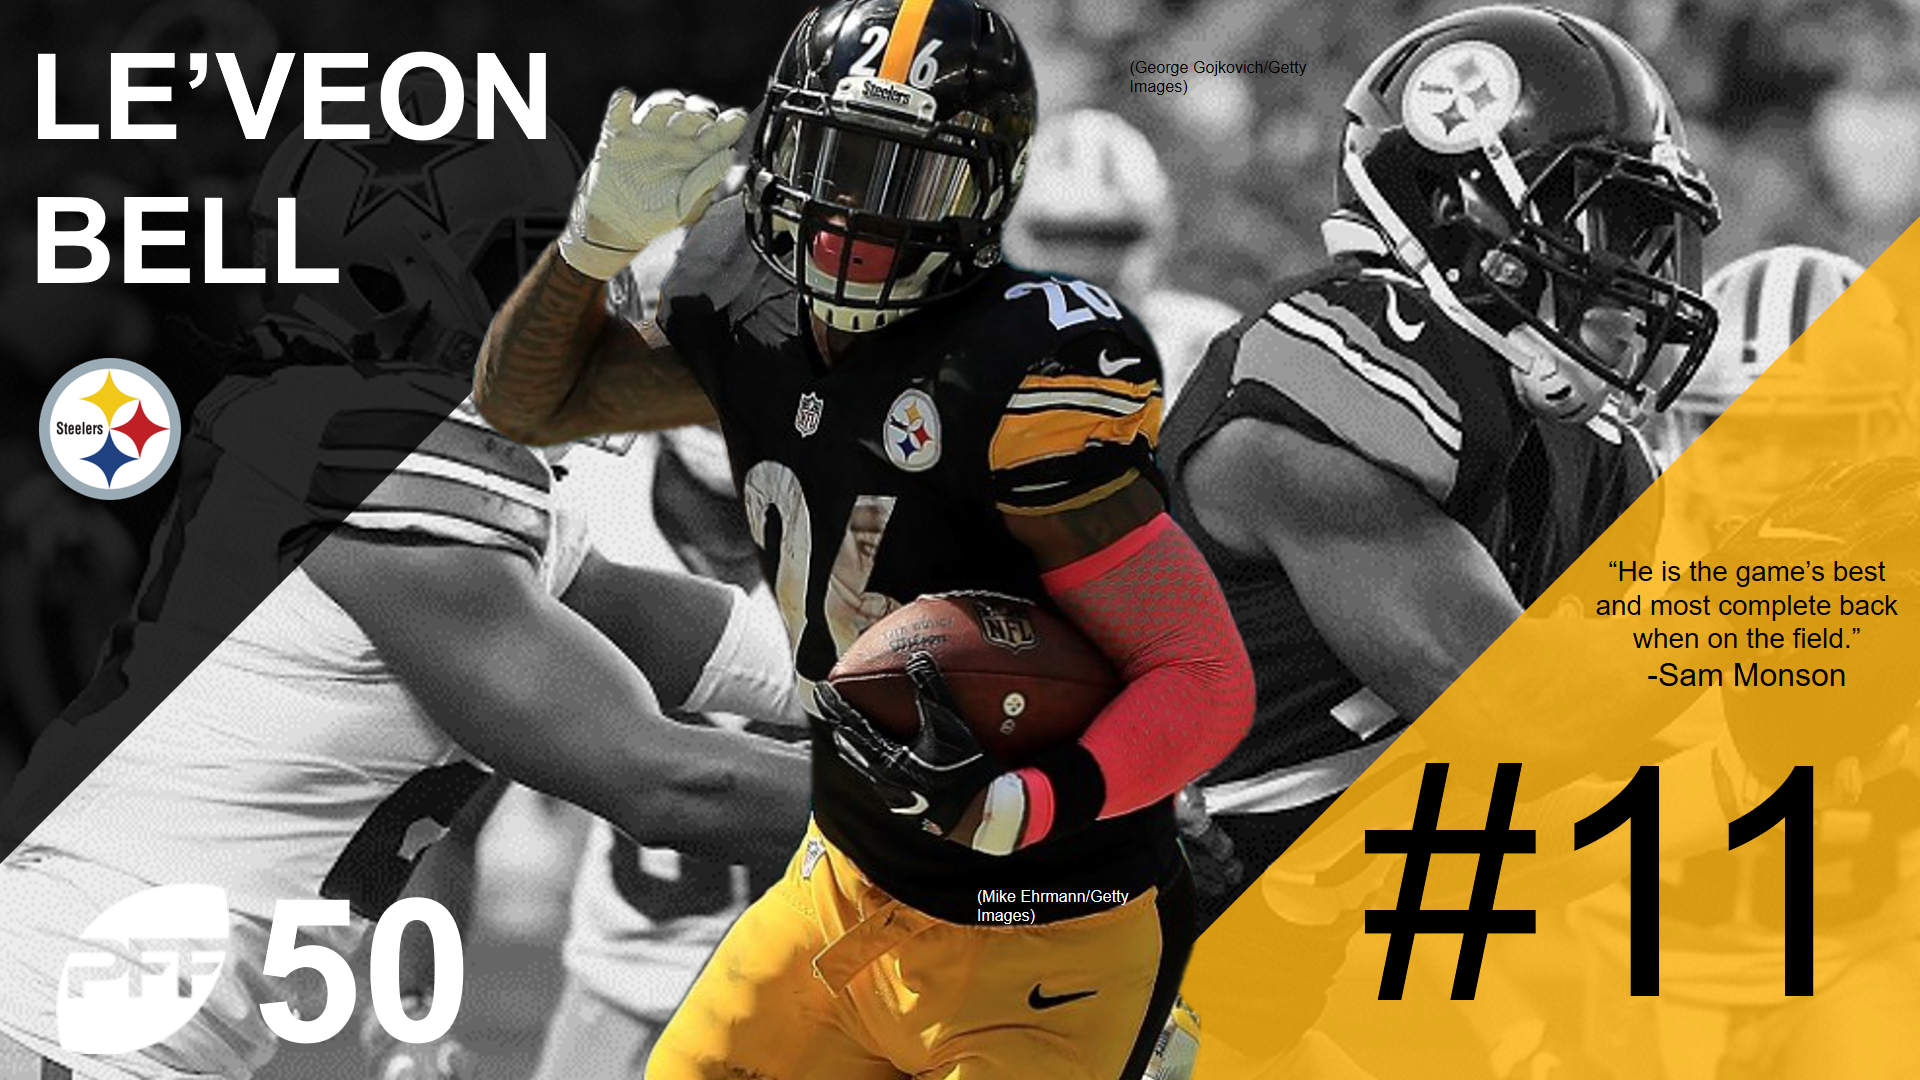 11 LeVeon Bell